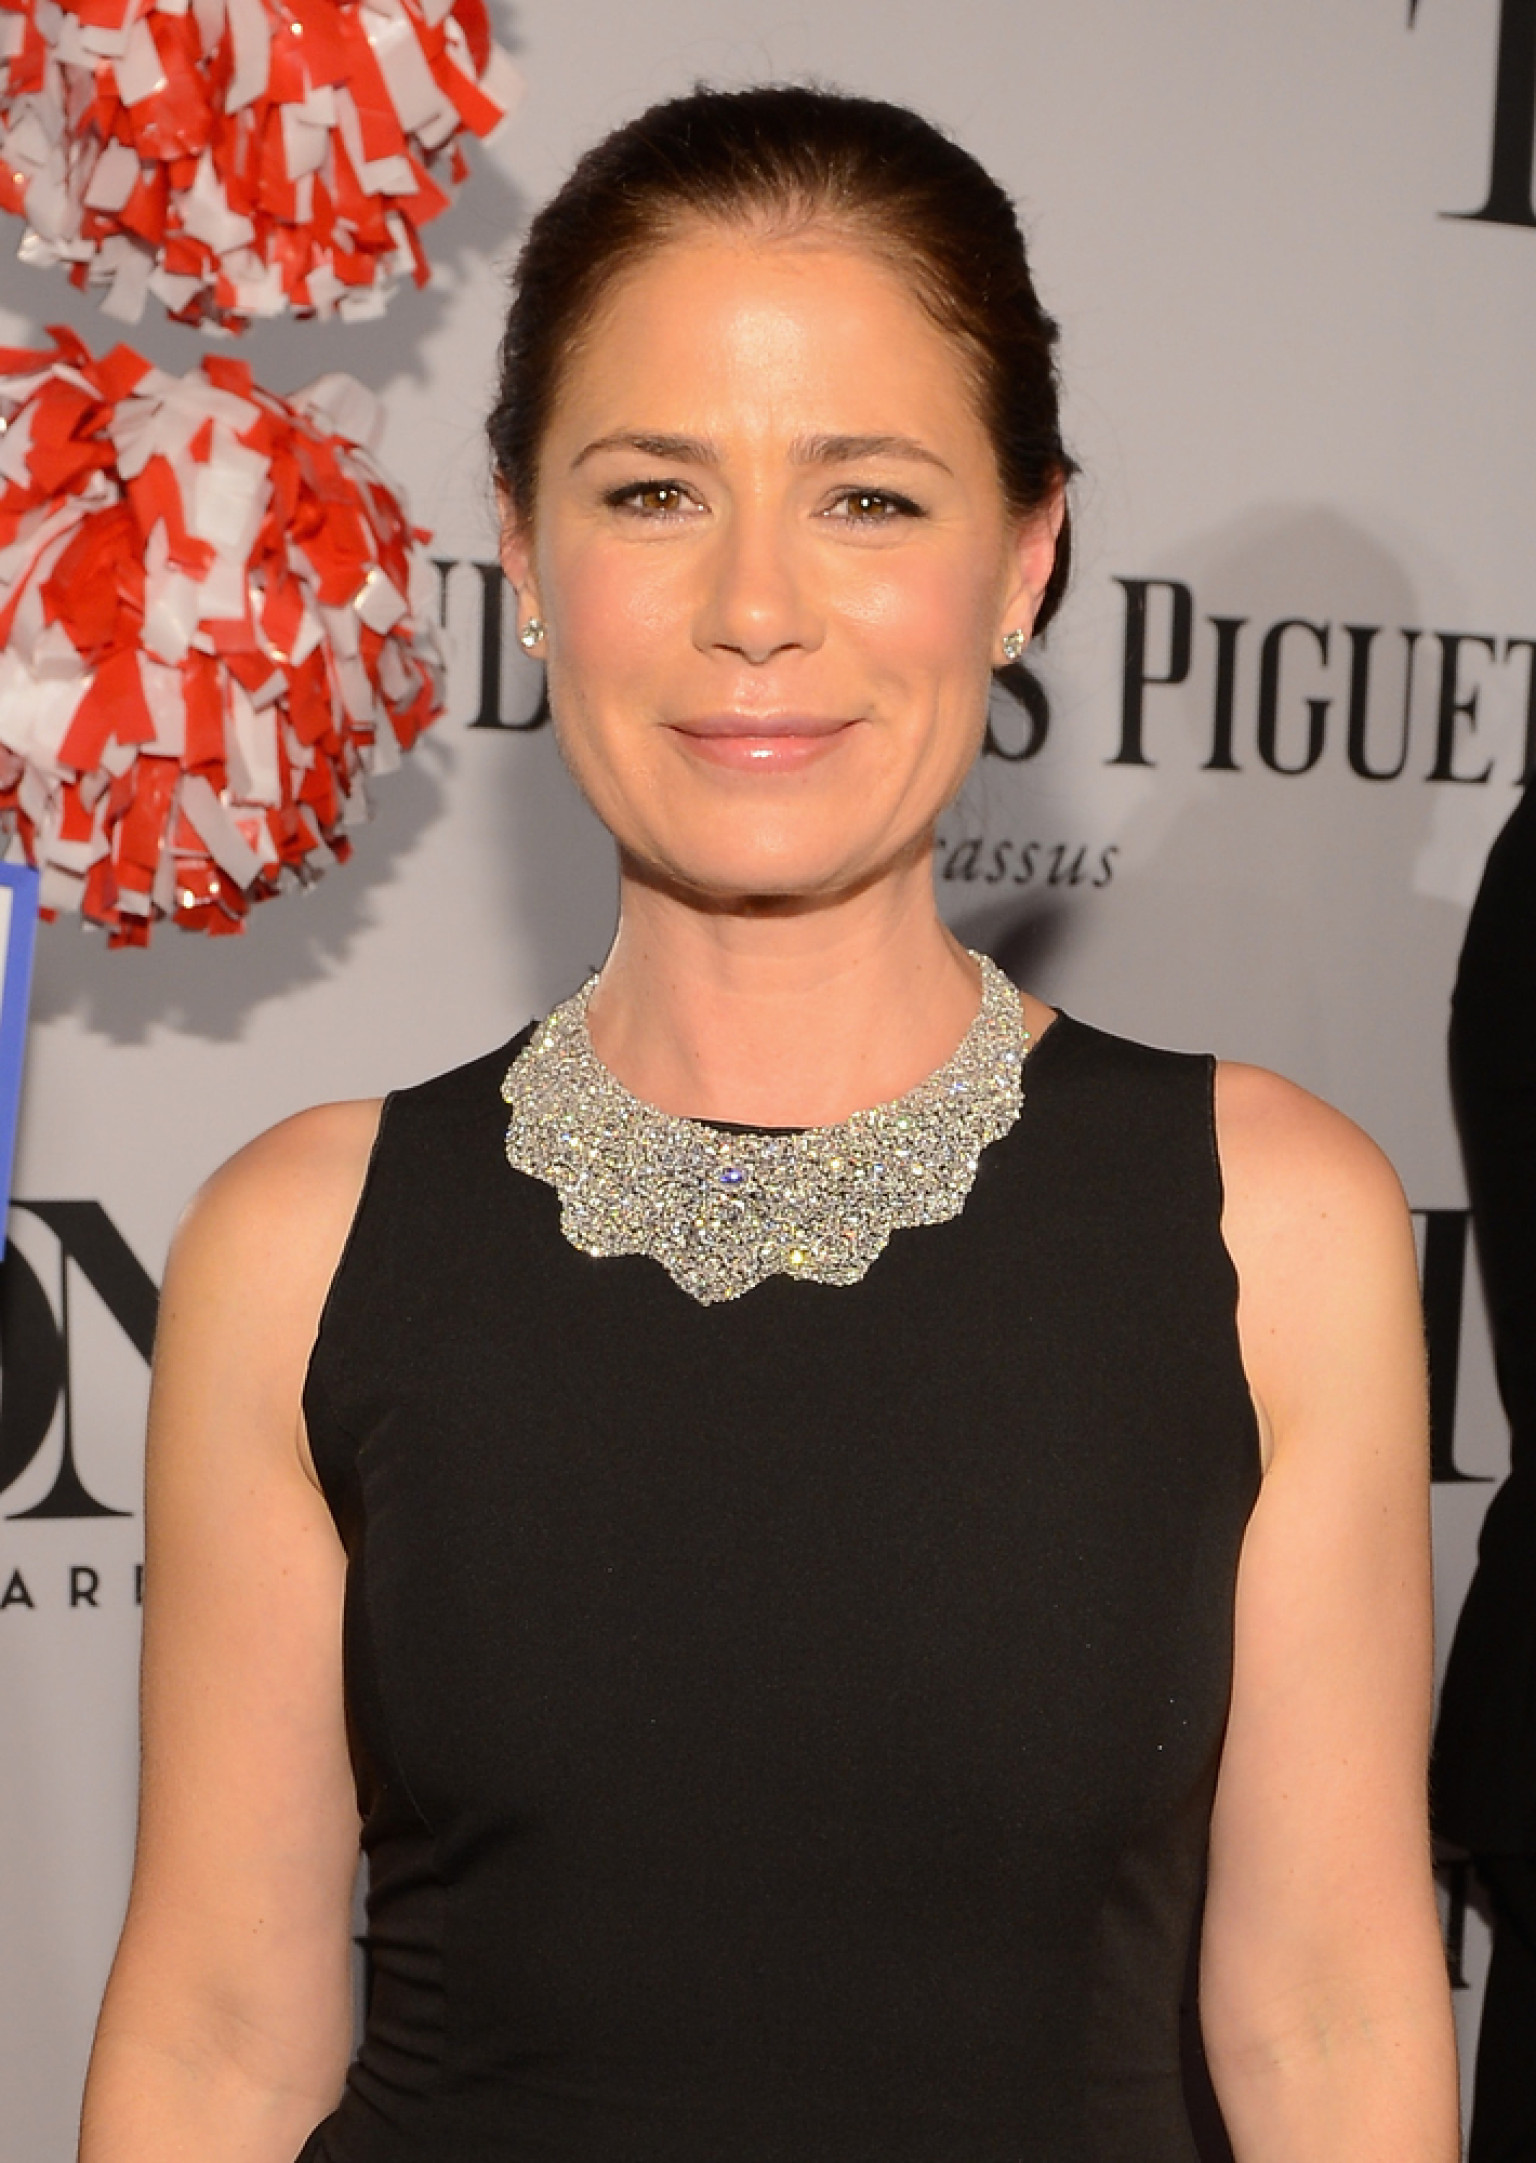 Maura Tierney email address